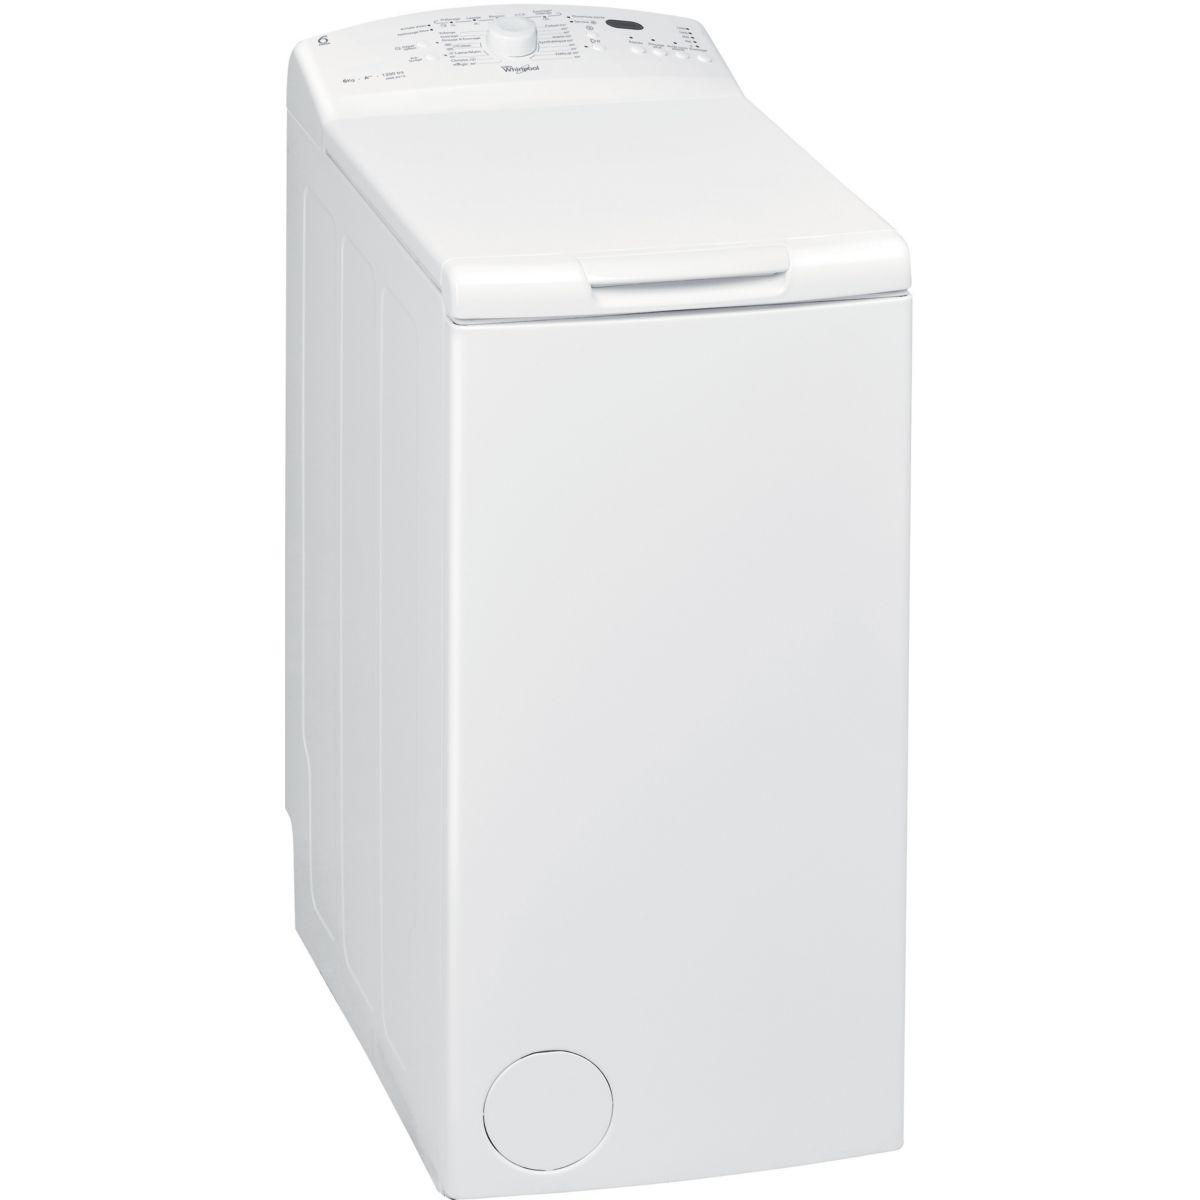 Lave linge top whirlpool awe 6215 (photo)